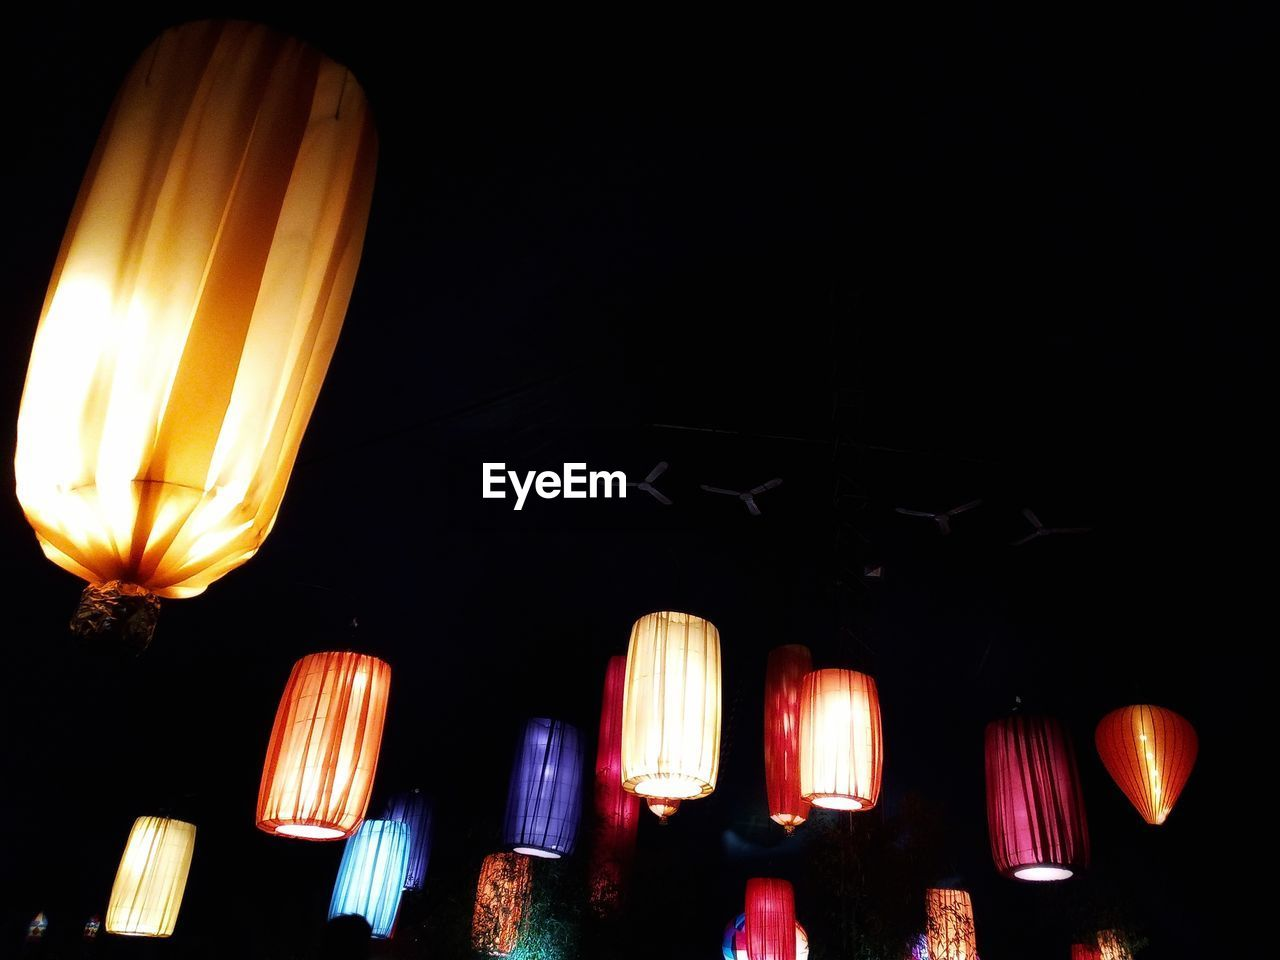 illuminated, lighting equipment, night, lantern, glowing, low angle view, hanging, chinese lantern, celebration, no people, electricity, dark, indoors, light, decoration, in a row, paper lantern, electric light, electric lamp